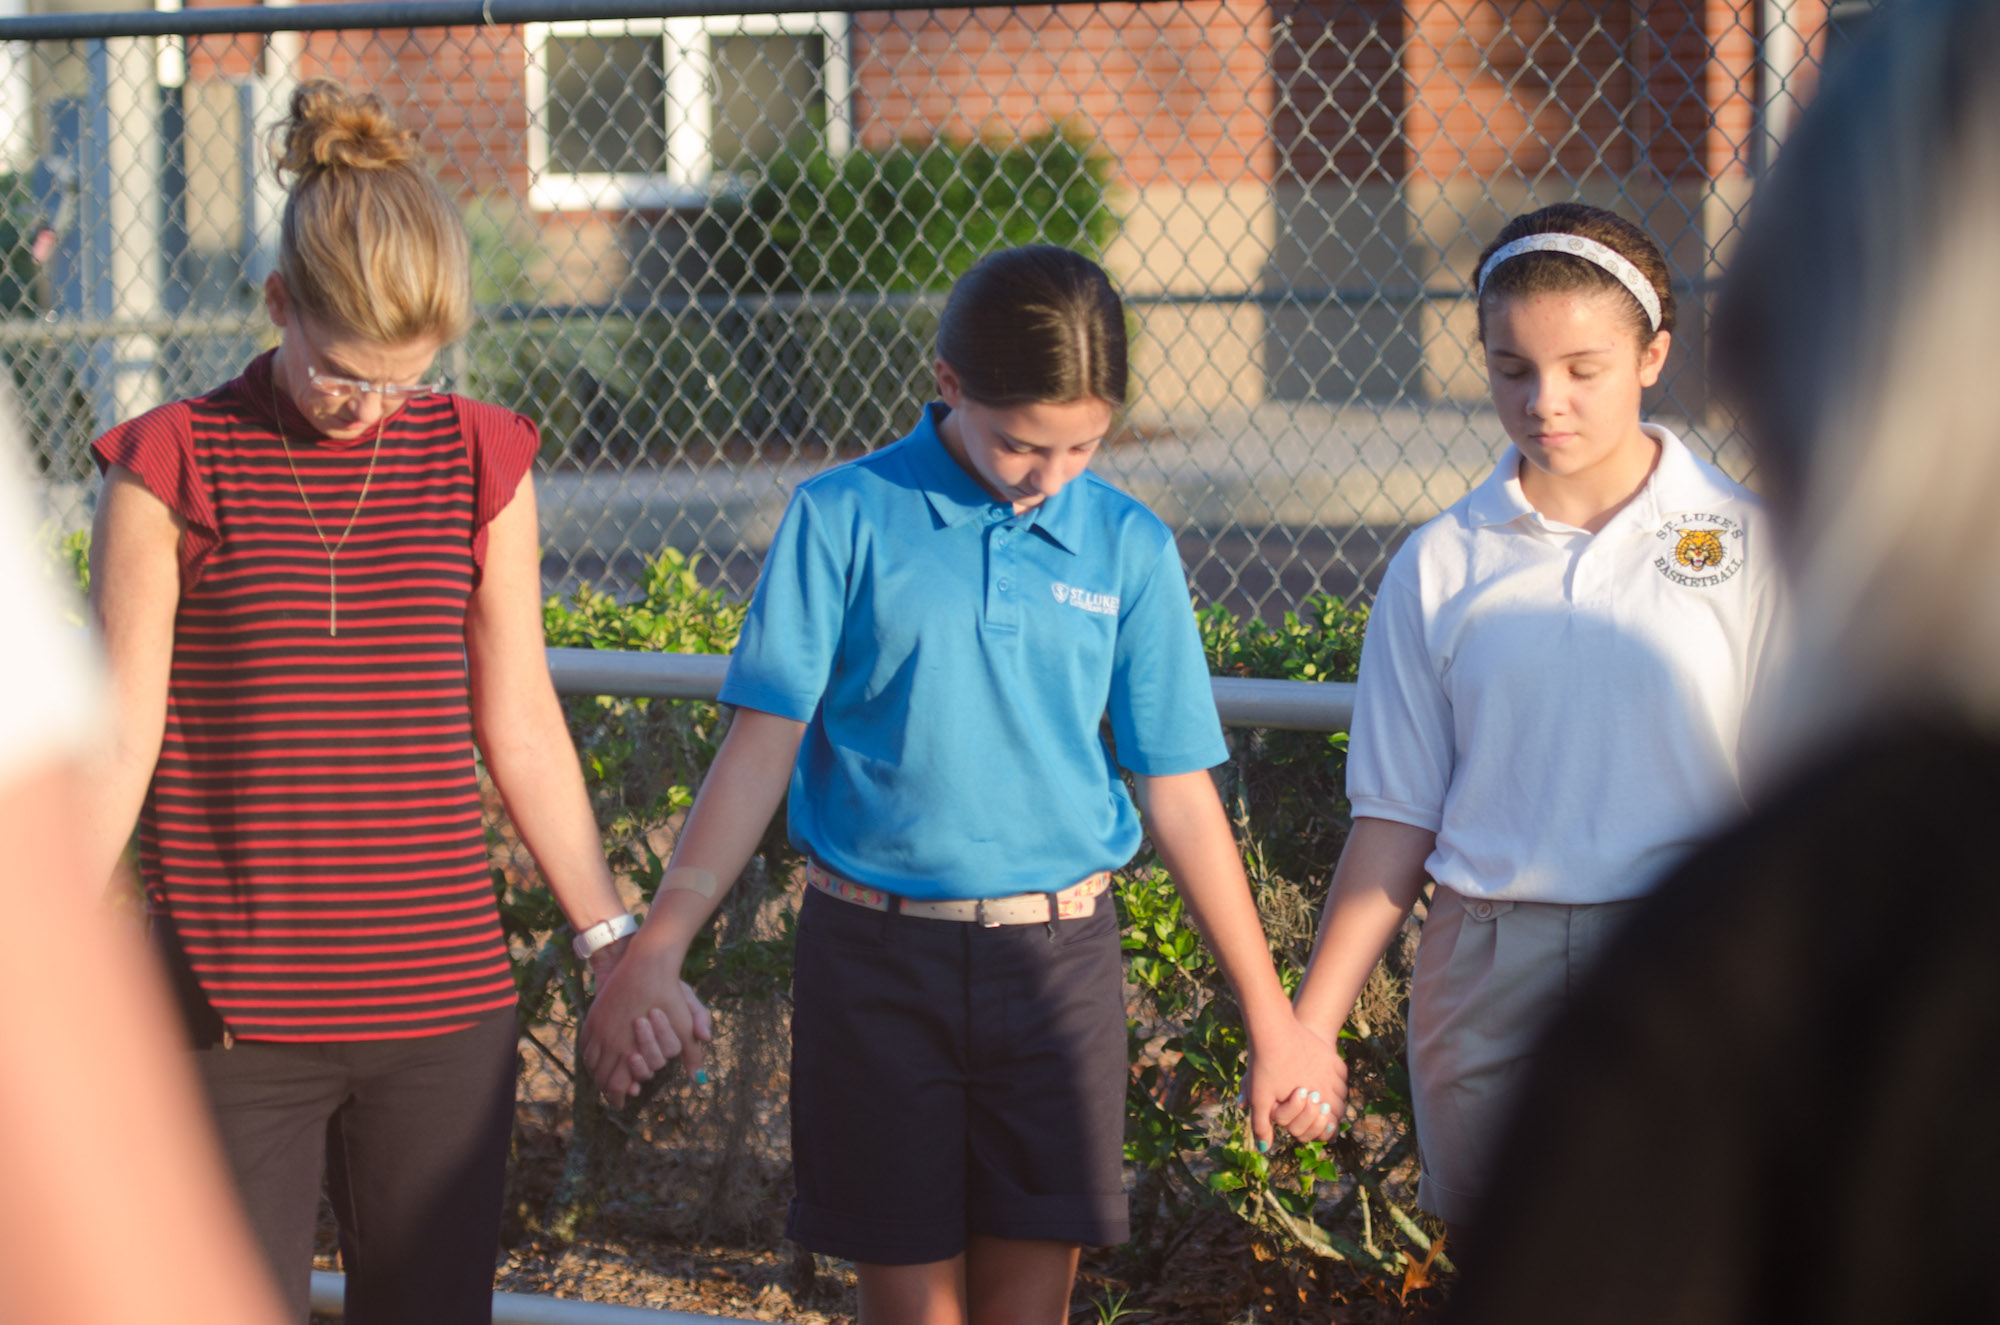 St. Luke's – See You at the Pole